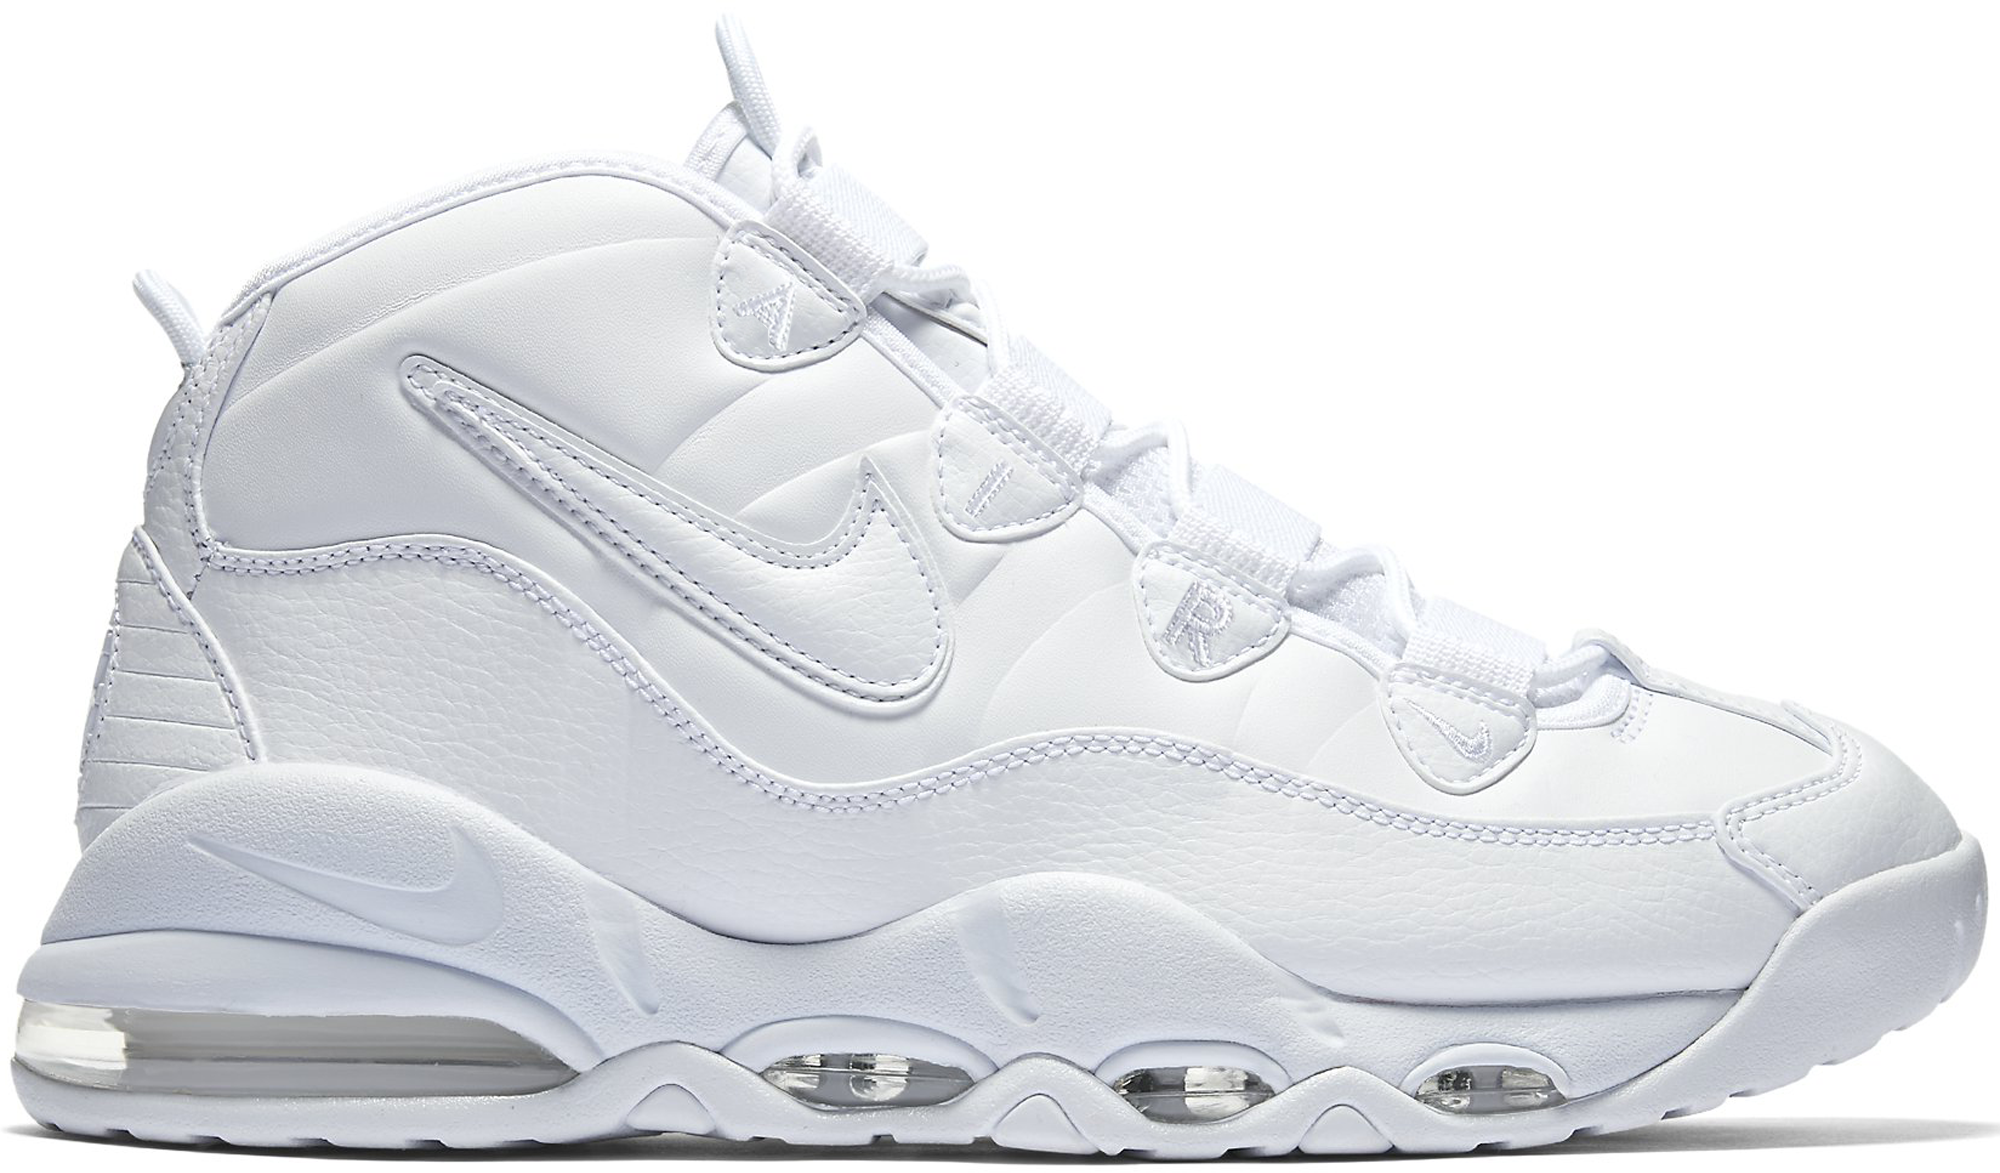 nike air max uptempo 97 freshwater for sale. Black Bedroom Furniture Sets. Home Design Ideas